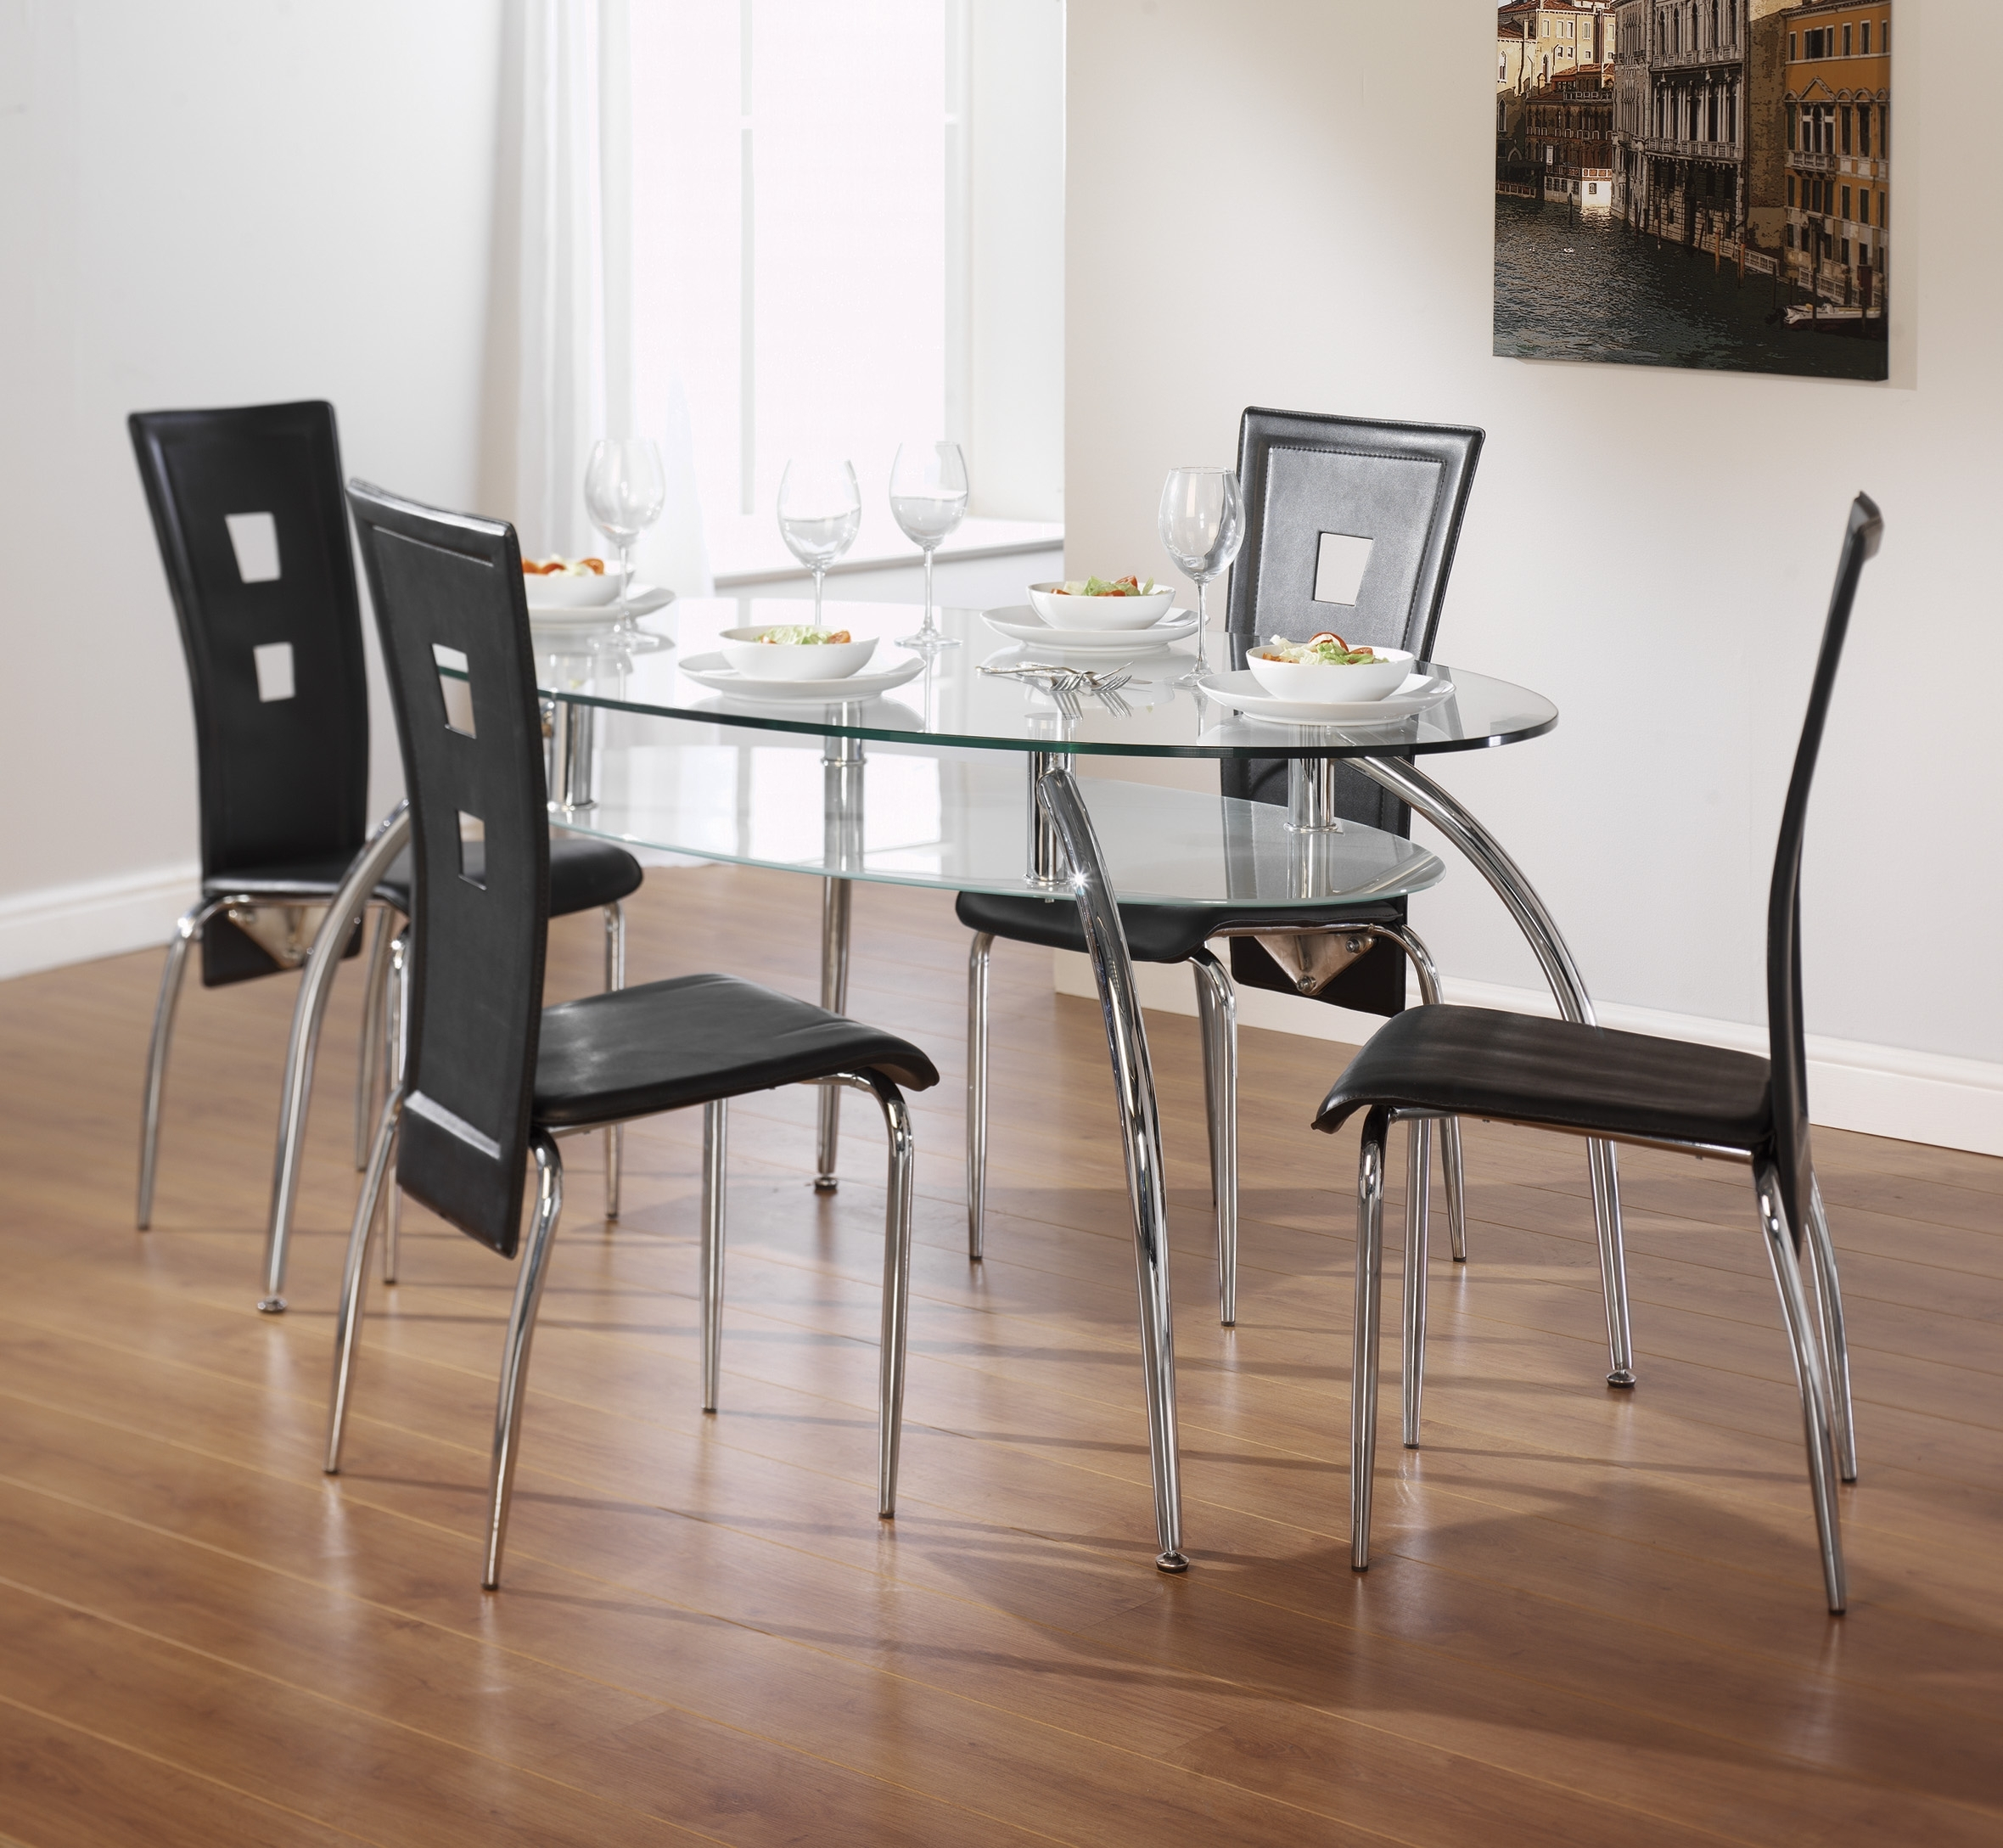 6 Seater Glass Dining Table Sets In Fashionable Dining Tables At Aintree Liquidation Centre (View 4 of 25)